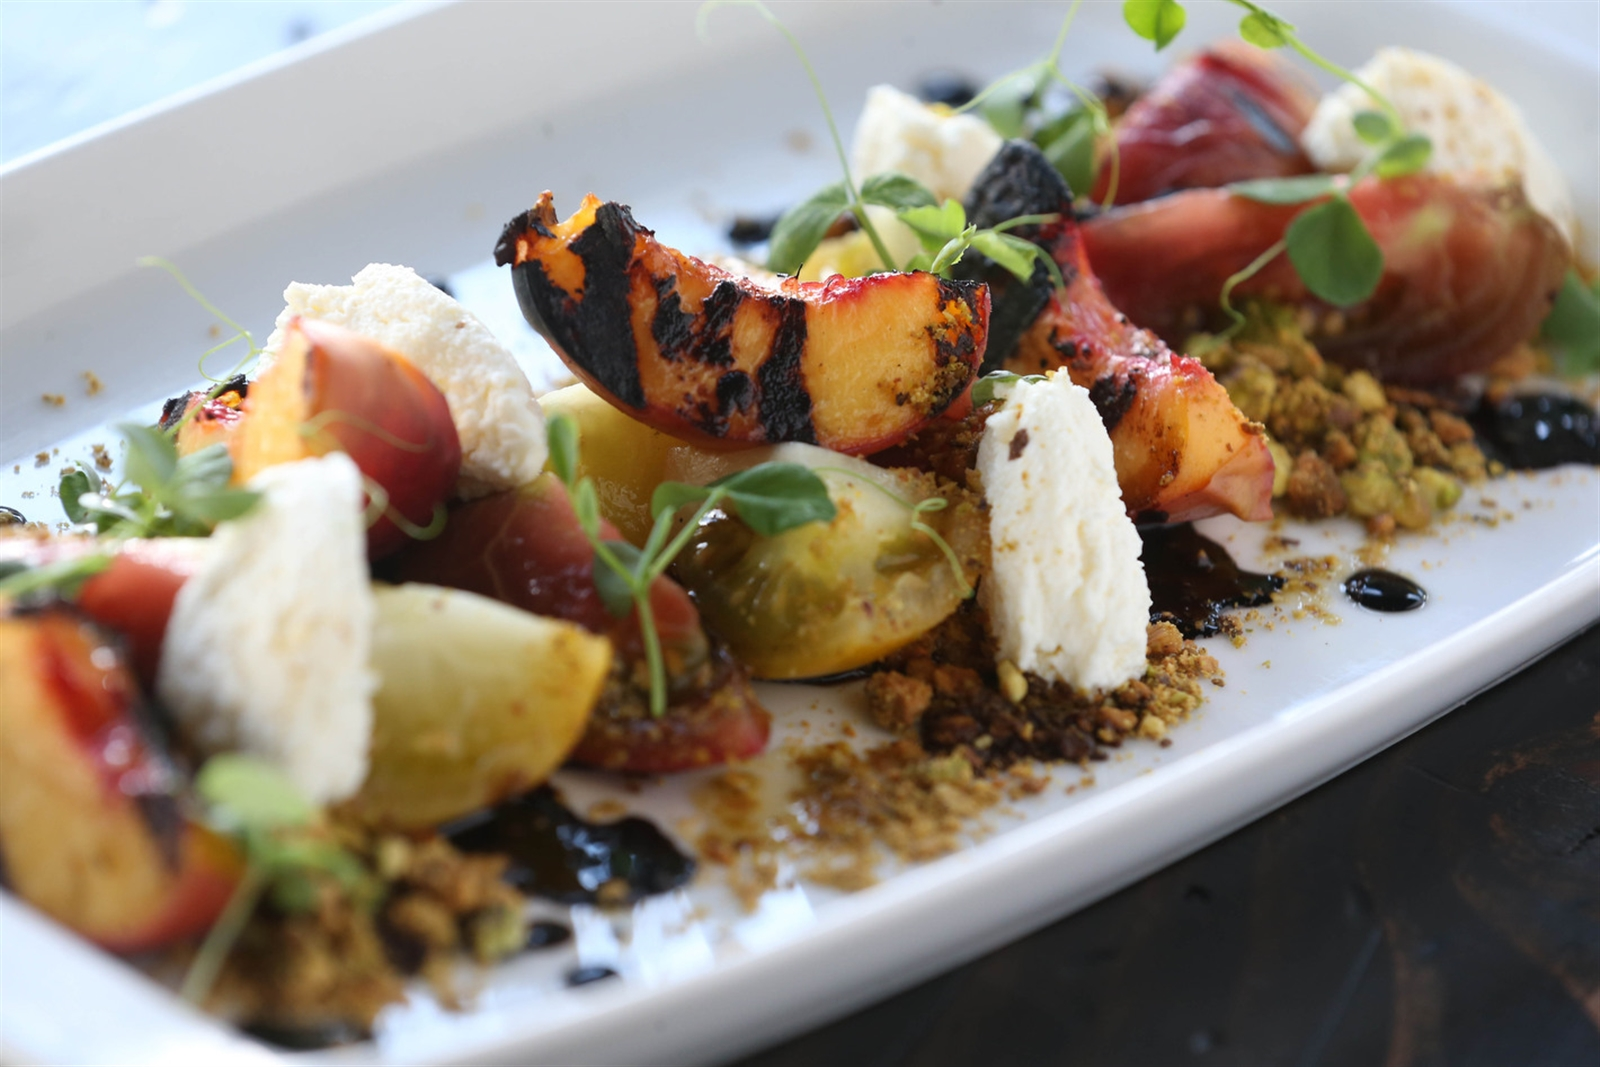 The grilled peach and tomato salad is made with local peaches, Wierzbic Farm heirloom tomatoes, housemade ricotta and pistachio balsamic.